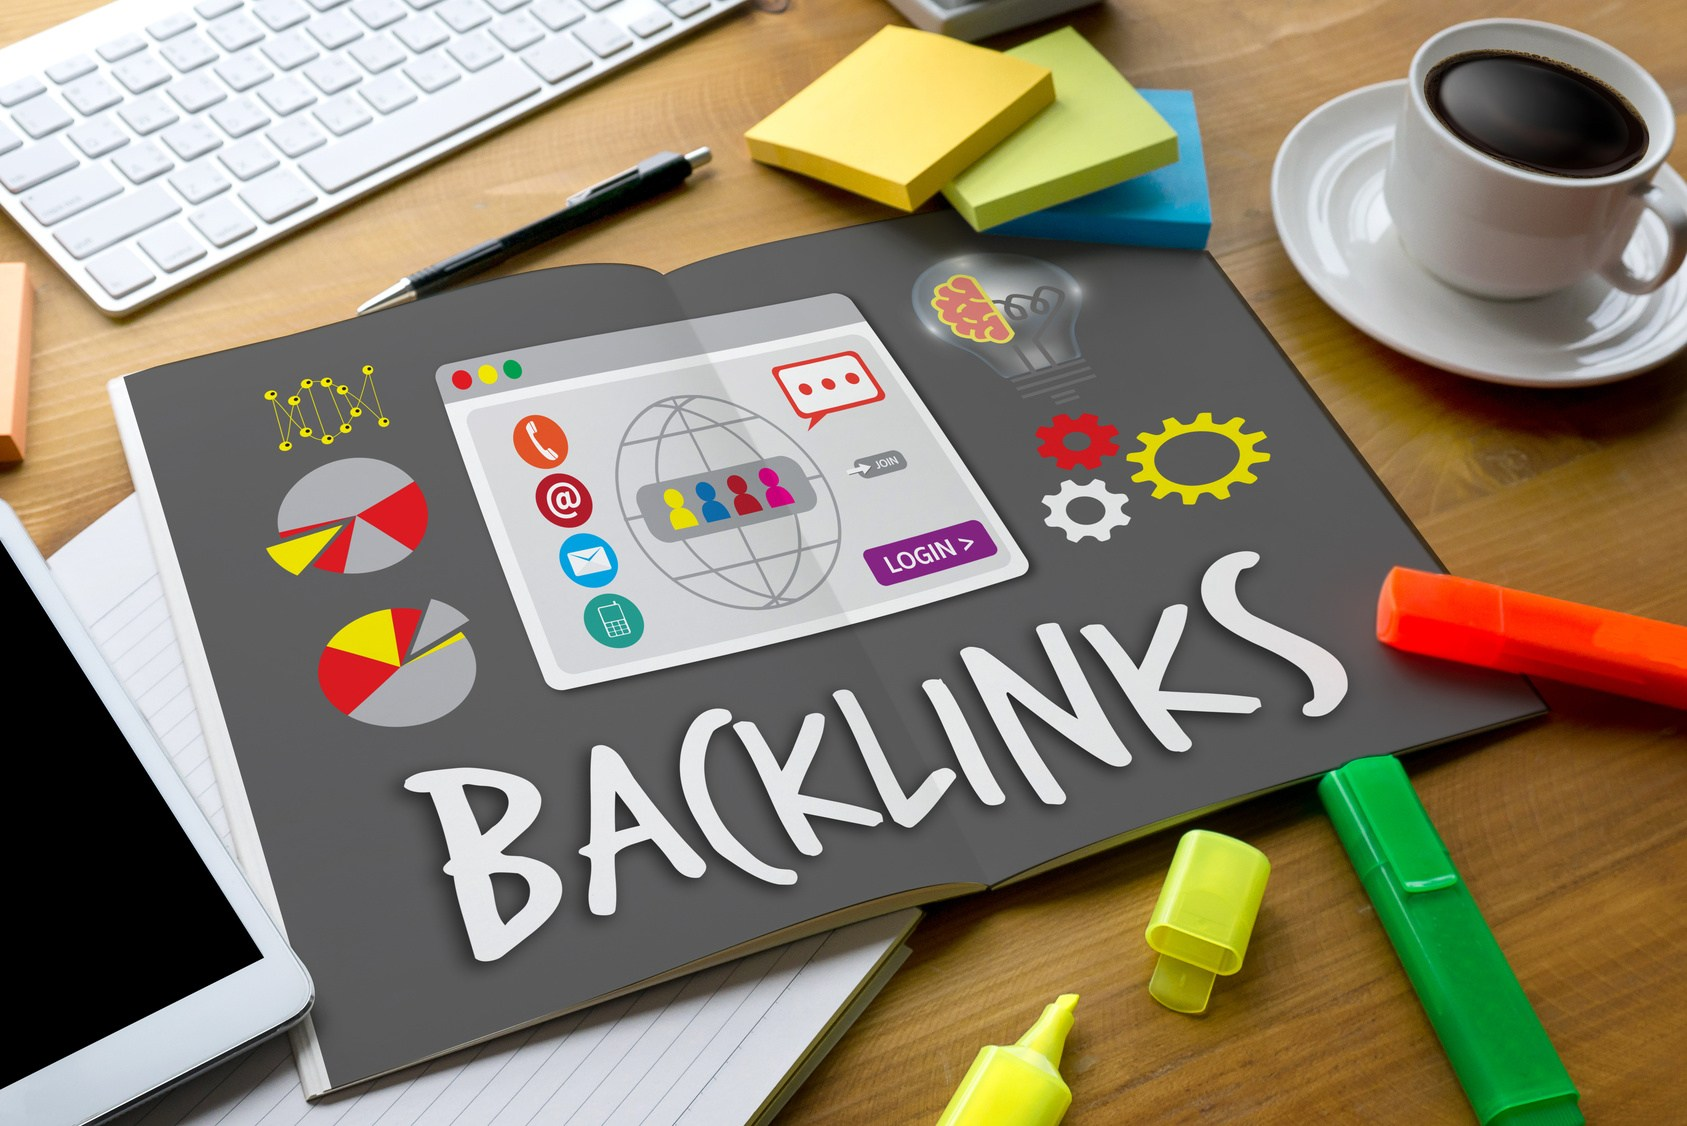 50 PBN Backlinks Rank Booster SEO Package - High Quality Effective